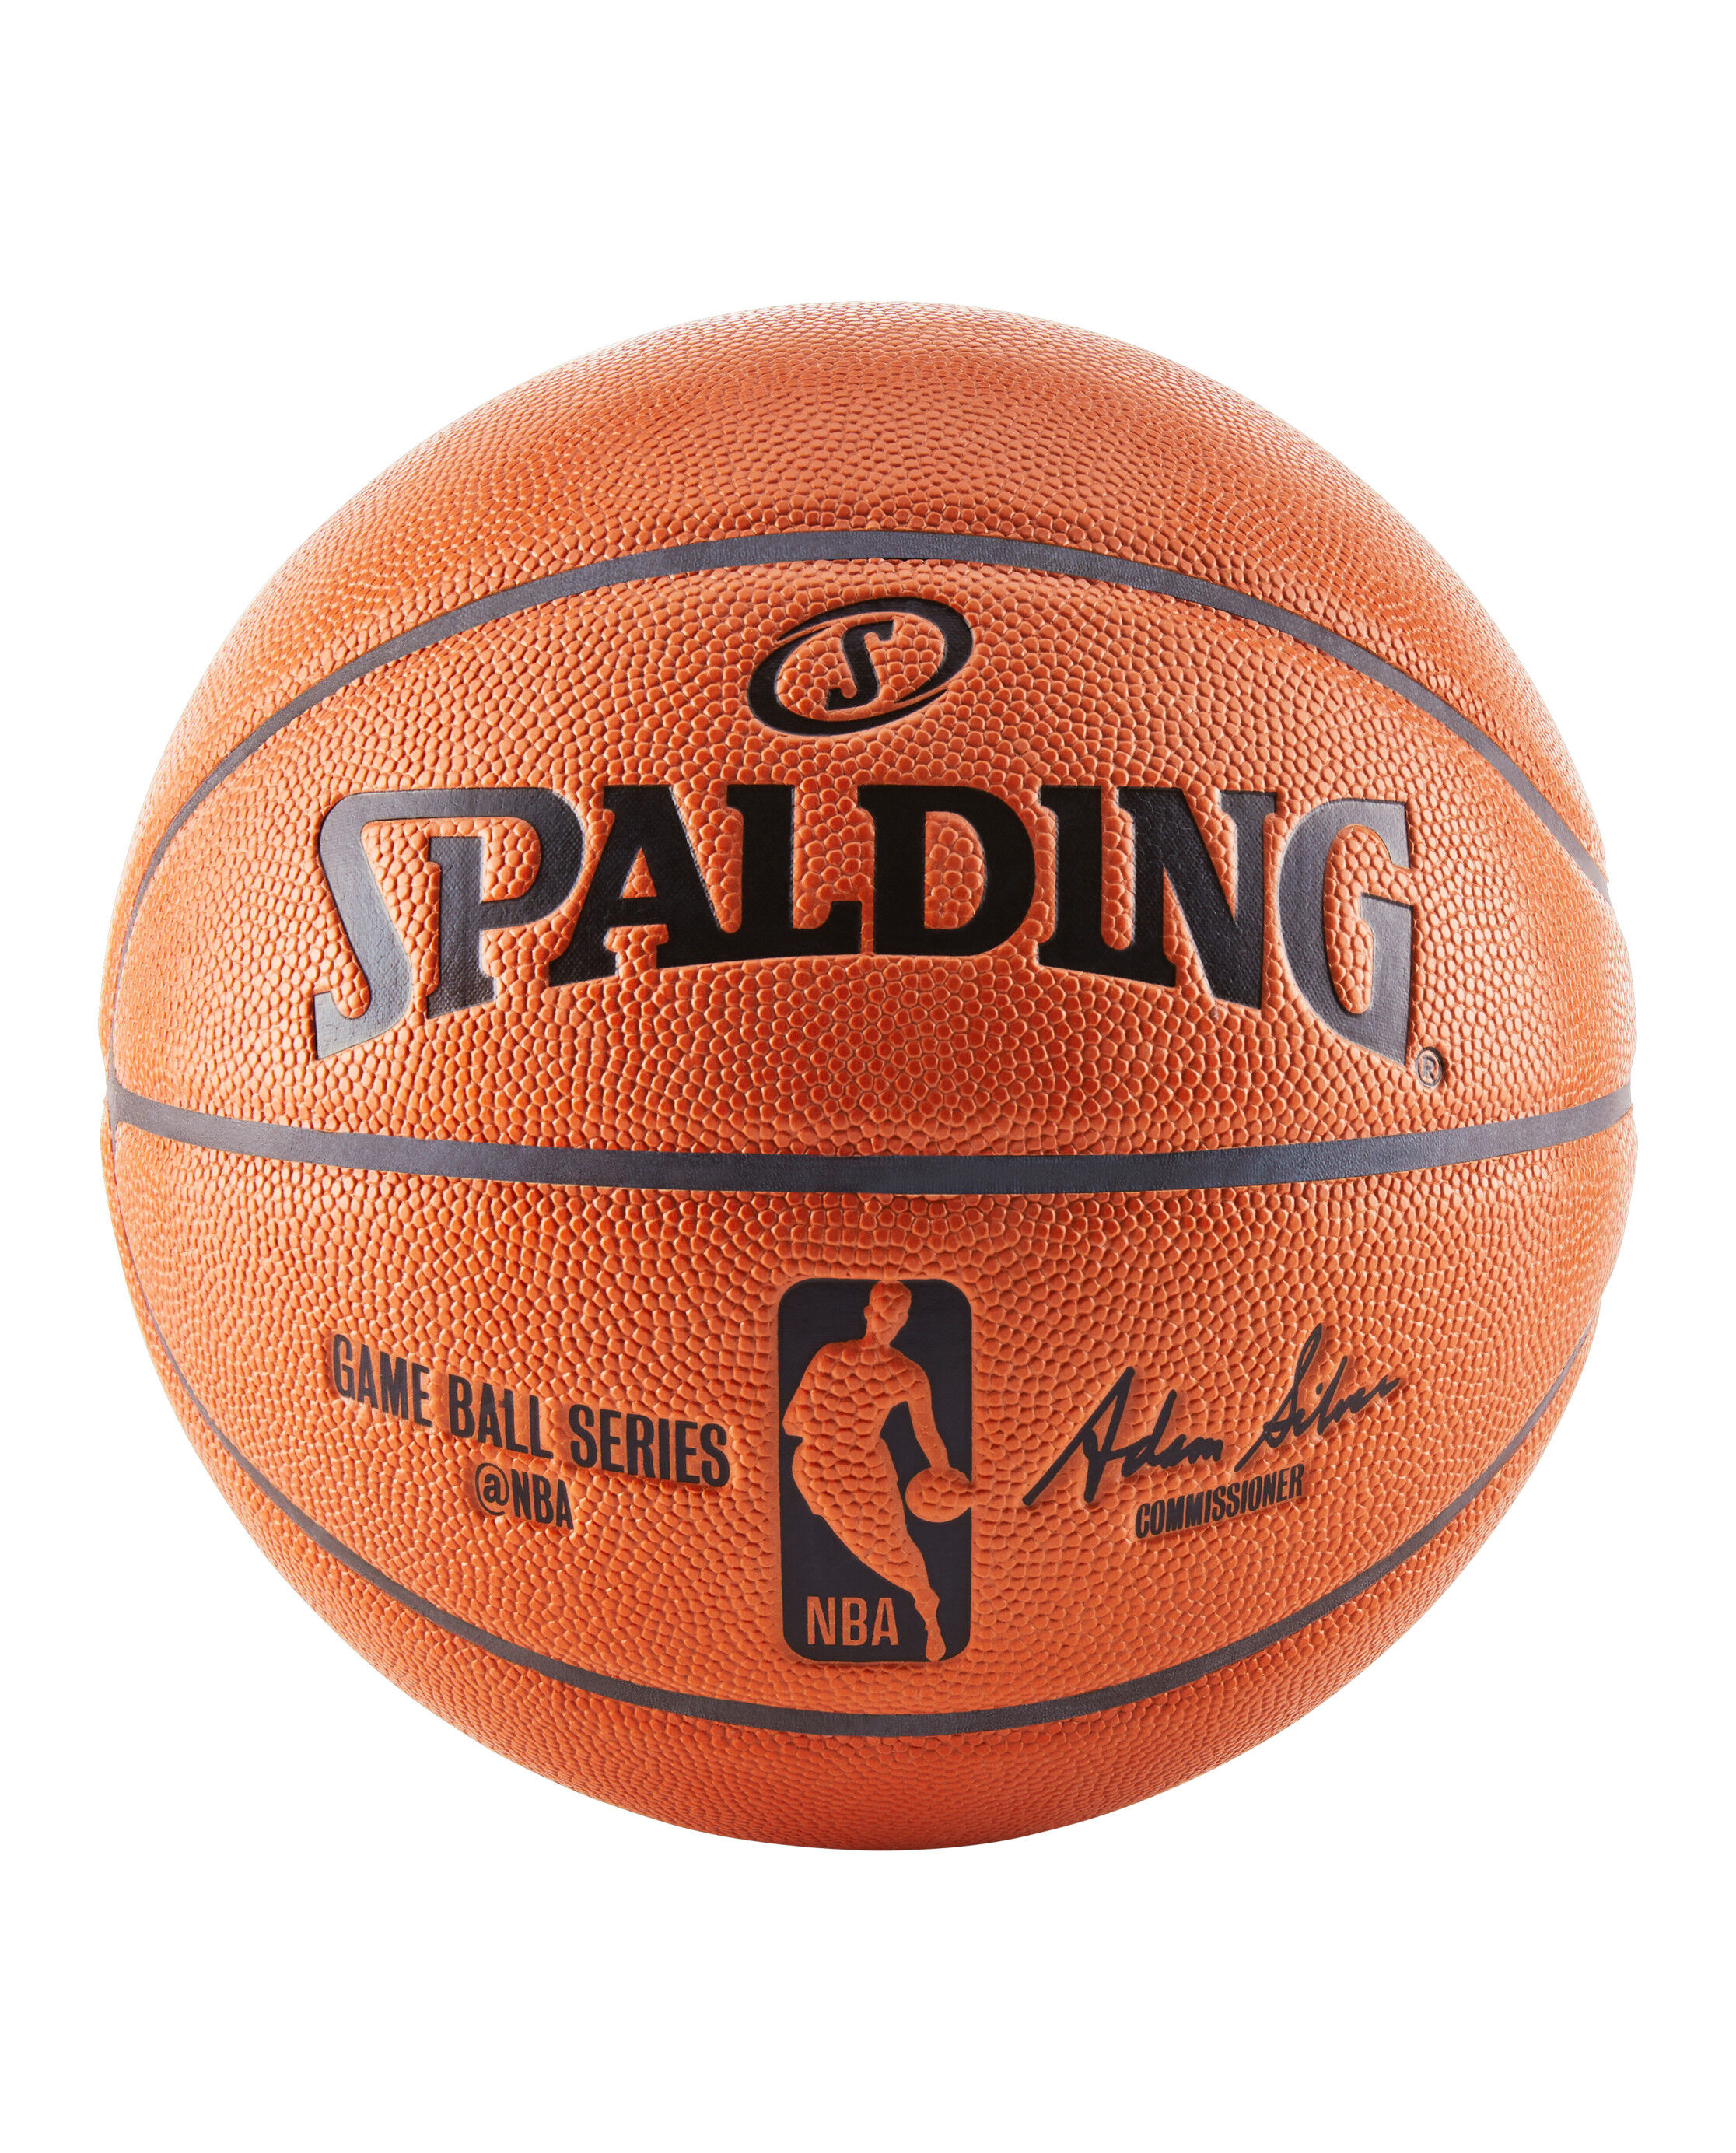 NBA Game Ball Replica Basketball 29.5   sc 1 th 250 & Spalding | True to the Game | Official Website